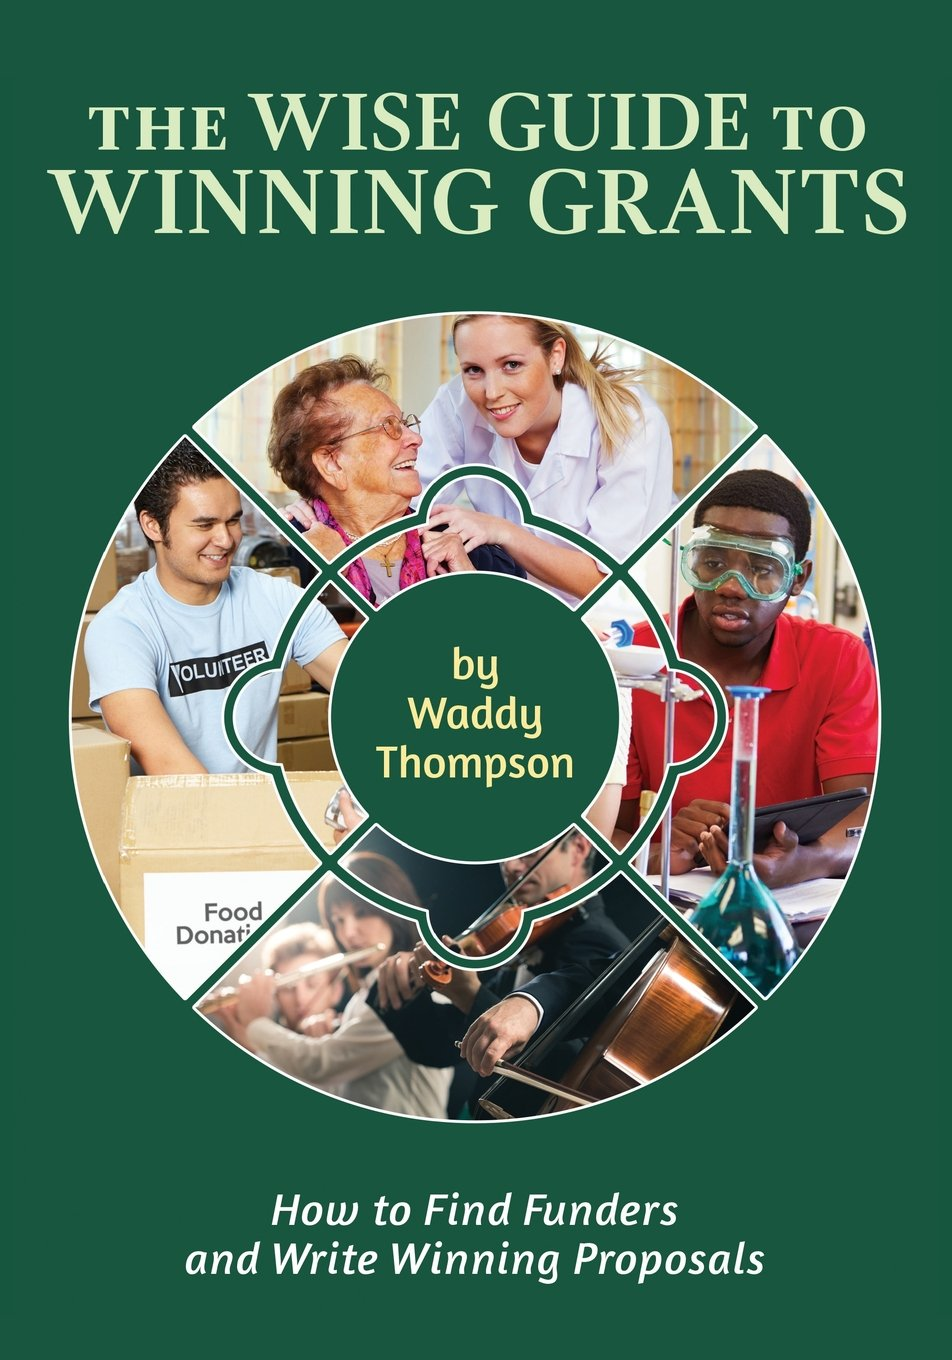 The Wise Guide to Winning Grants: How to Find Funders and Write Winning Proposals (Wise Guides) ebook